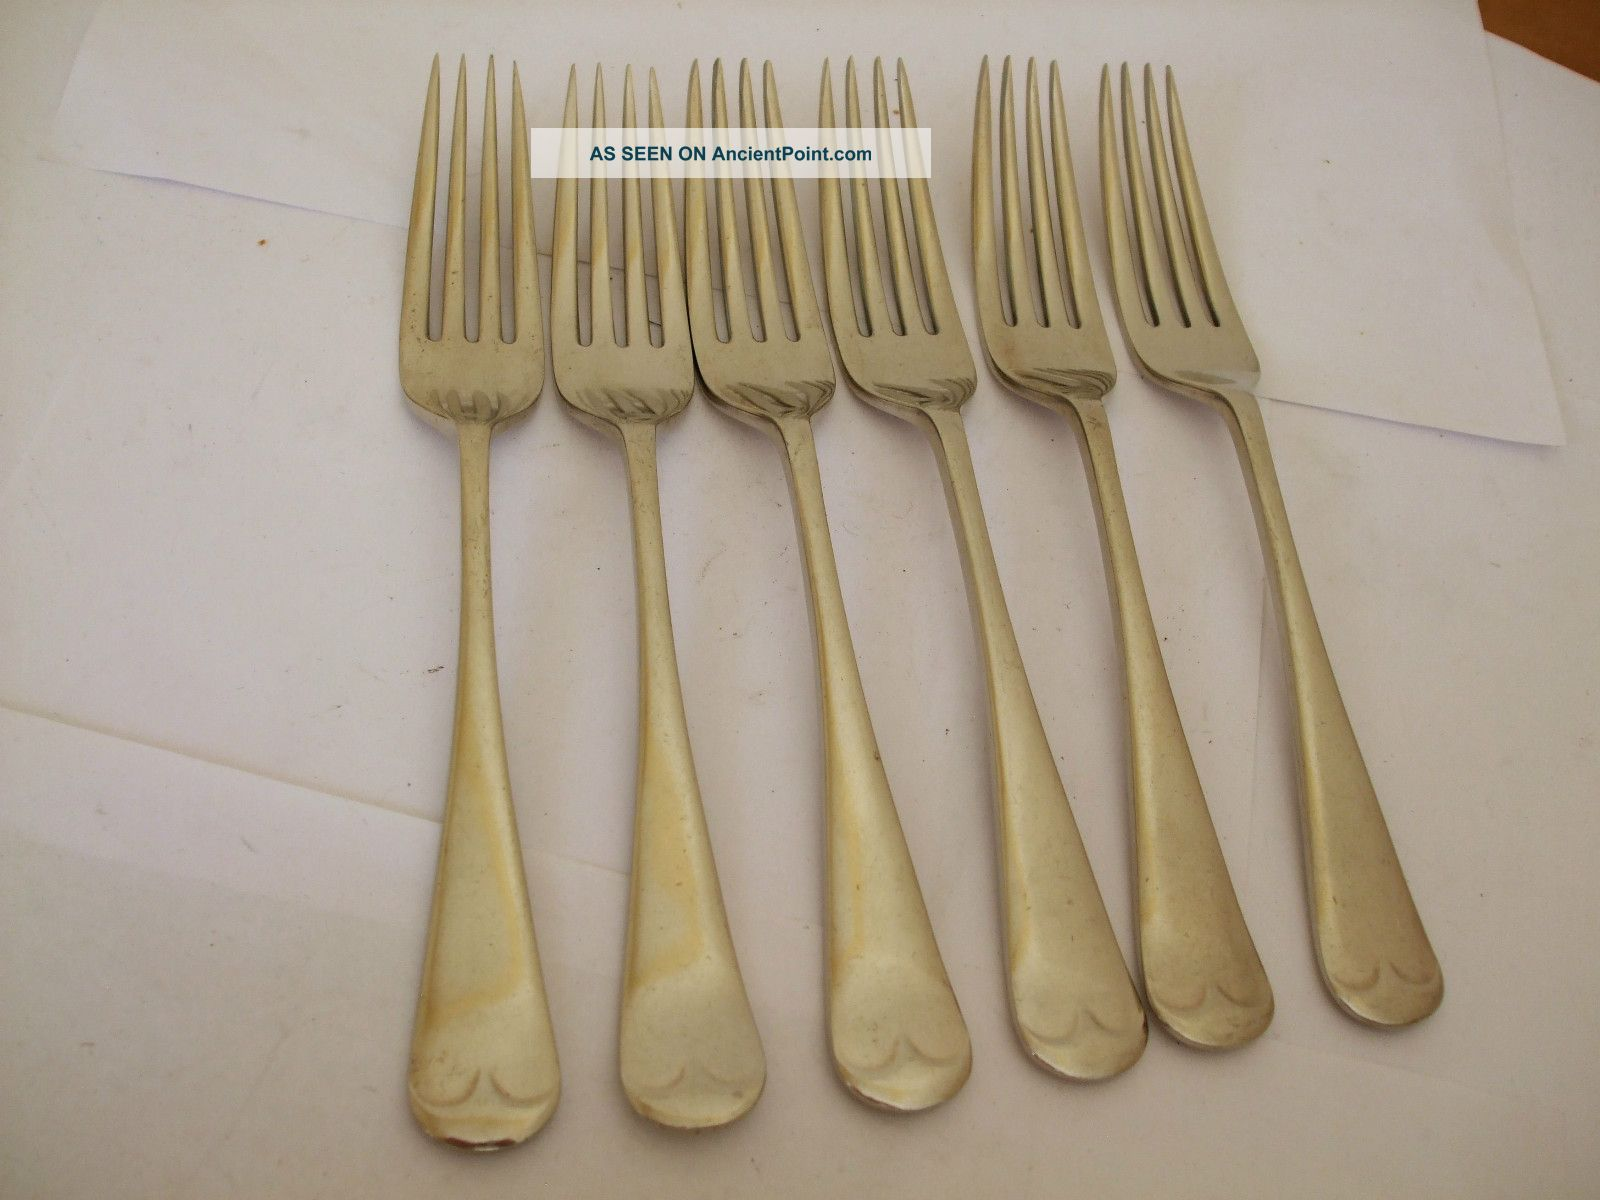 Vintage Nickel Silver 6 Forks Old English - 7.  75 Inches Stain Resist Rodgers Other photo